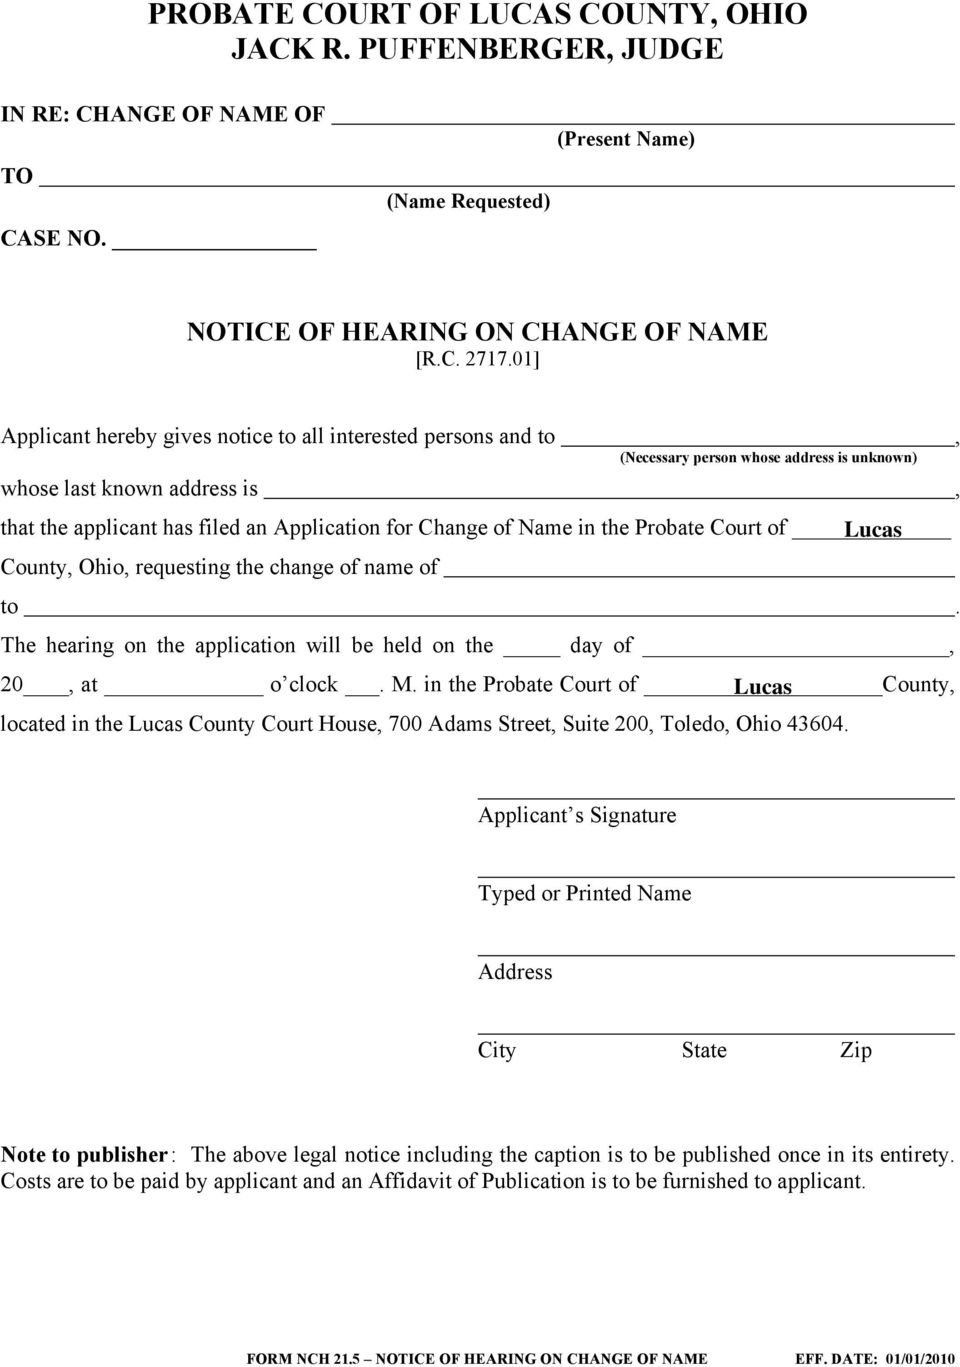 Name in the Probate Court of County, Ohio, requesting the change of name of to. The hearing on the application will be held on the day of, 20, at o clock. M.